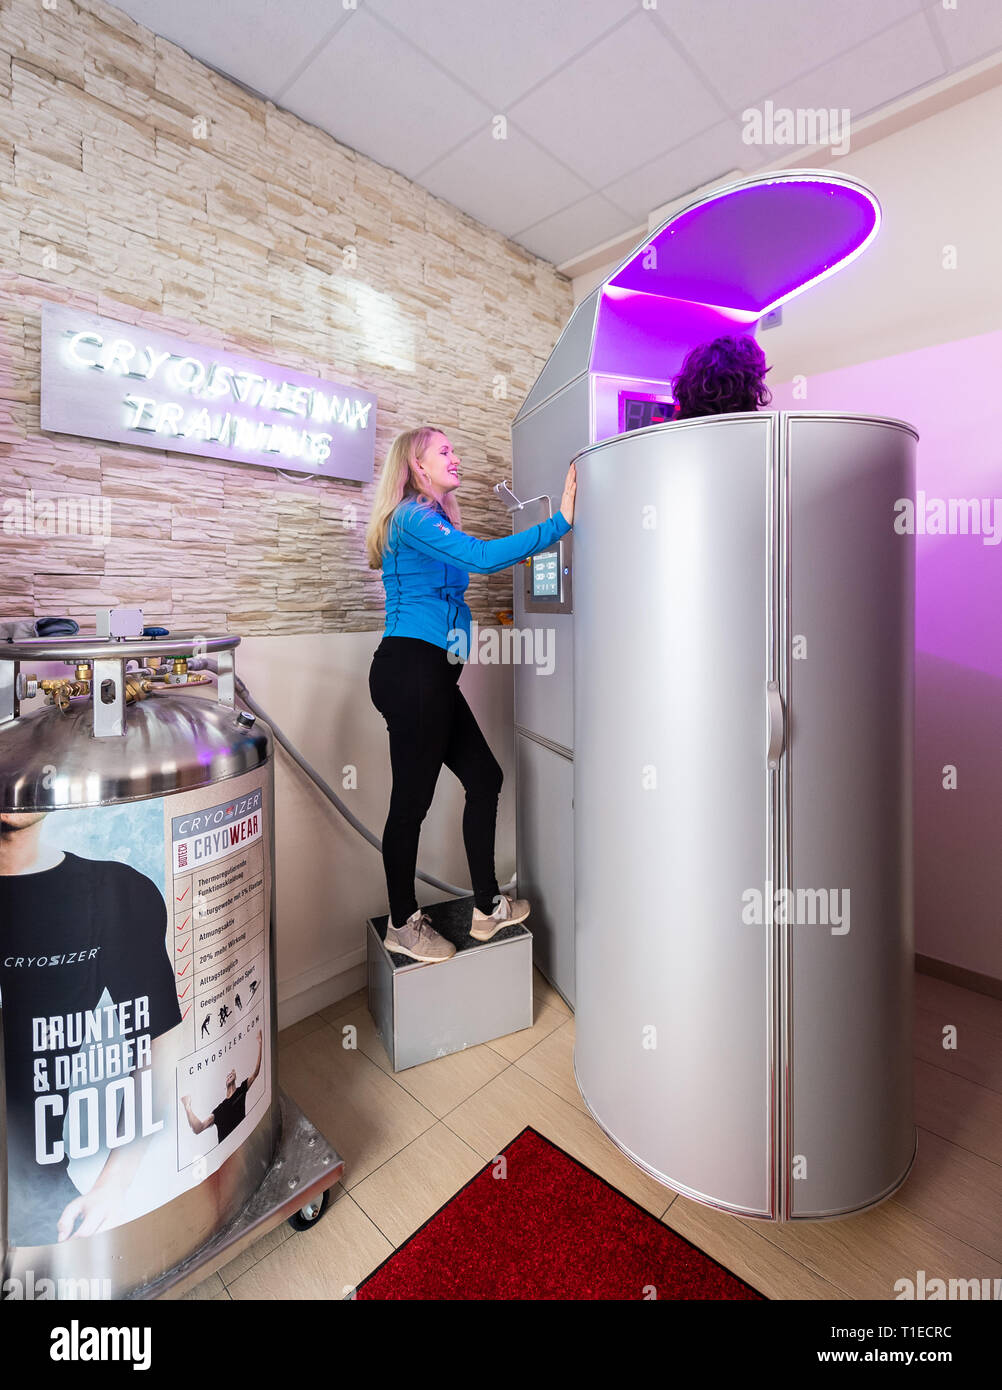 "26 February 2019, Hessen, Frankfurt/Main: Renate Süssenguth, head of the refrigeration club Frankfurt, starts a training at the refrigeration chamber on a touch display. The applications with extreme cold should trigger according to data of the offerers the so-called Afterburn effect, which increases the body-own calorie burn and is to help with removing. But the immune system is also to be strengthened and the rehabilitation phases, for example after operations, shortened. (to dpa ""From Cold Club to Hot Yoga - Business with Weight Loss Promise hums"" from 26.03.2019) Photo: Silas Stein/dpa Stock Photo"